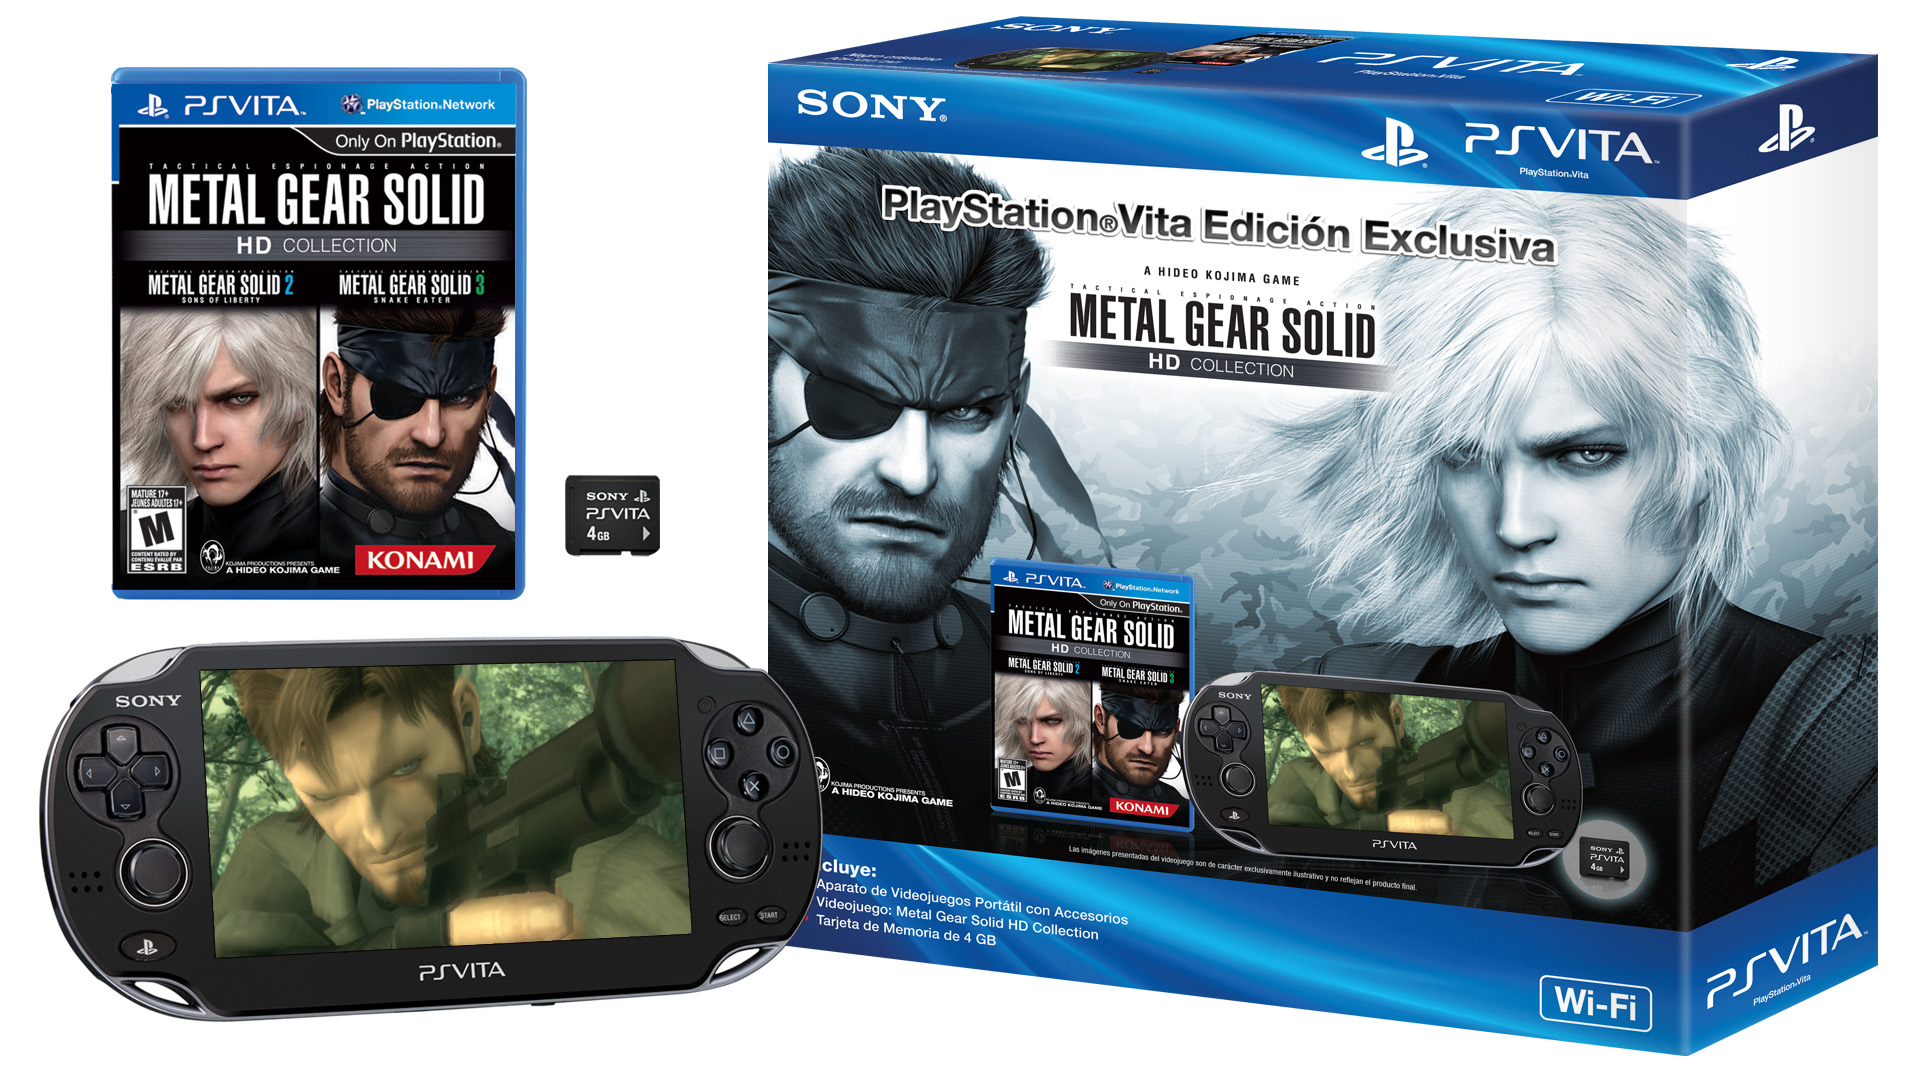 Sony anuncia un nuevo bundle de PS Vita con Metal Gear Solid HD Collection… y hay precio! [Vita]